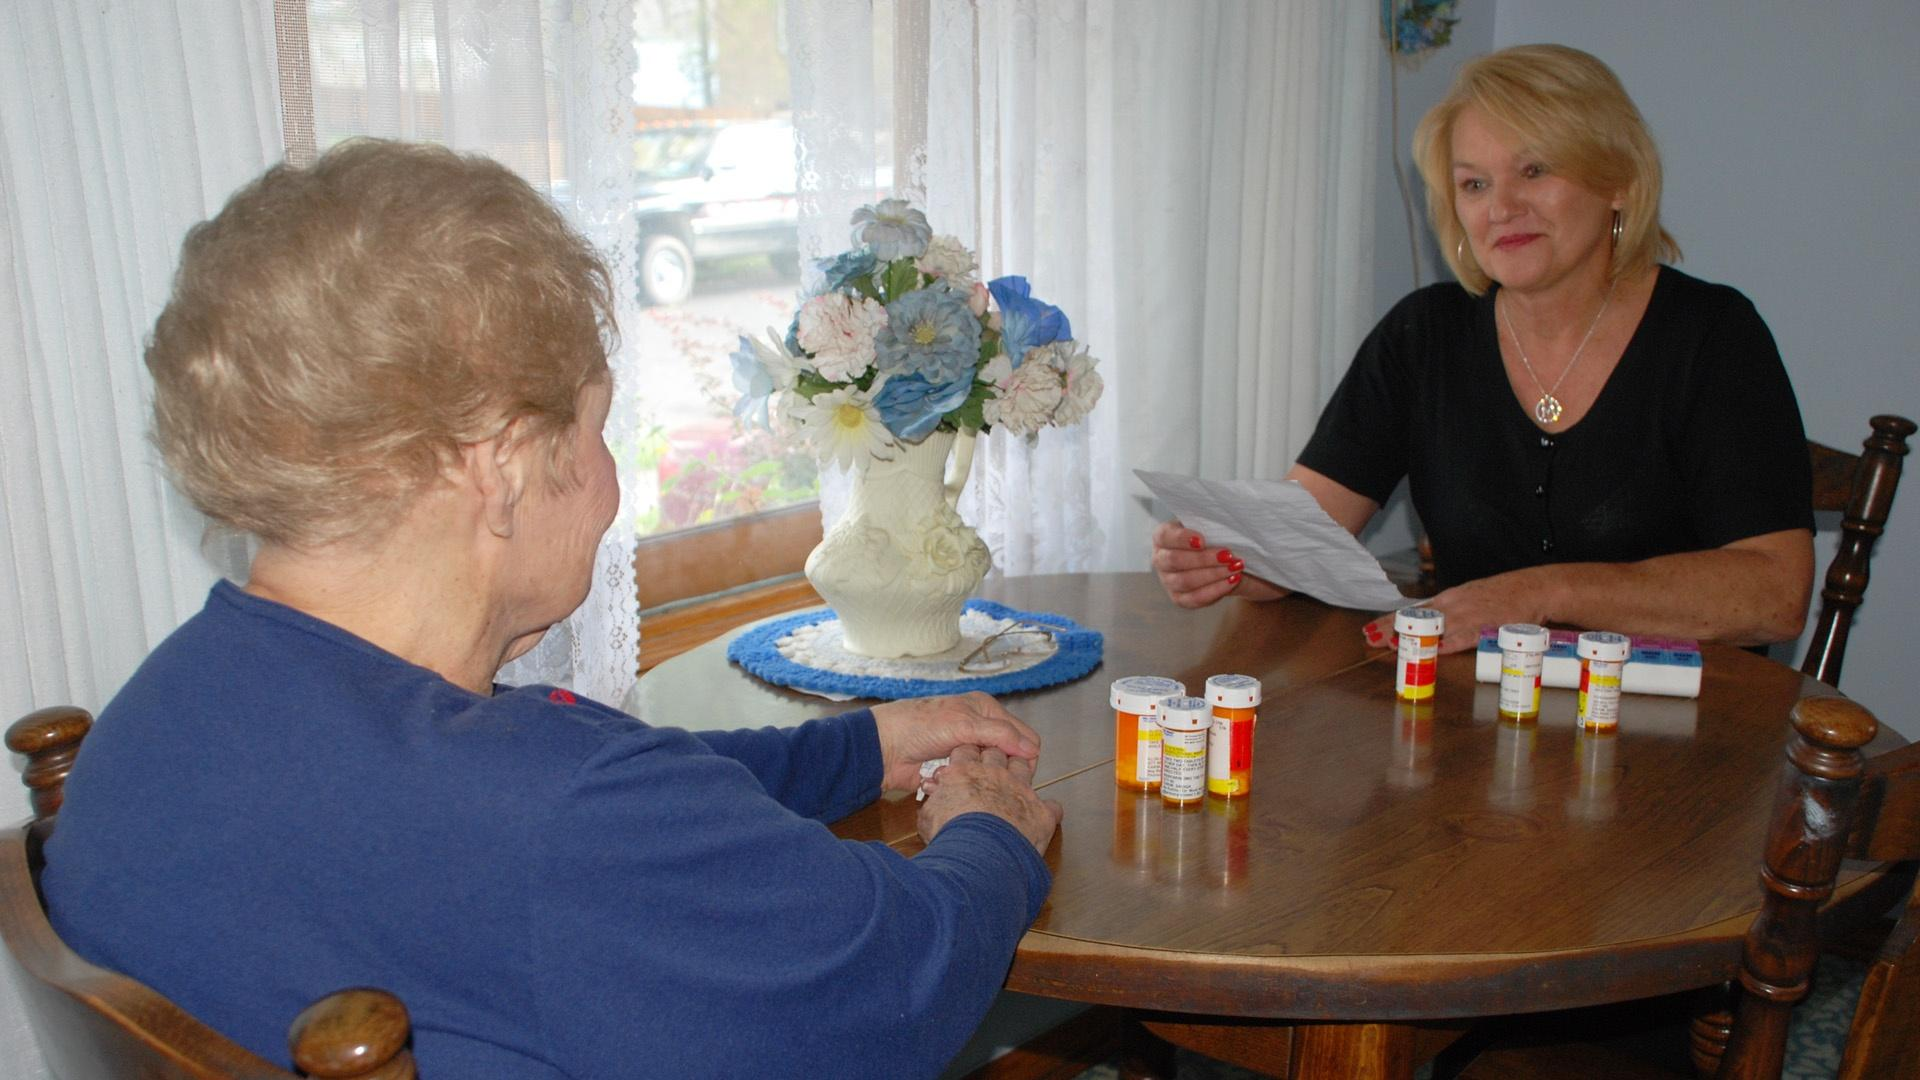 DAughter helping to organize her mother's medication